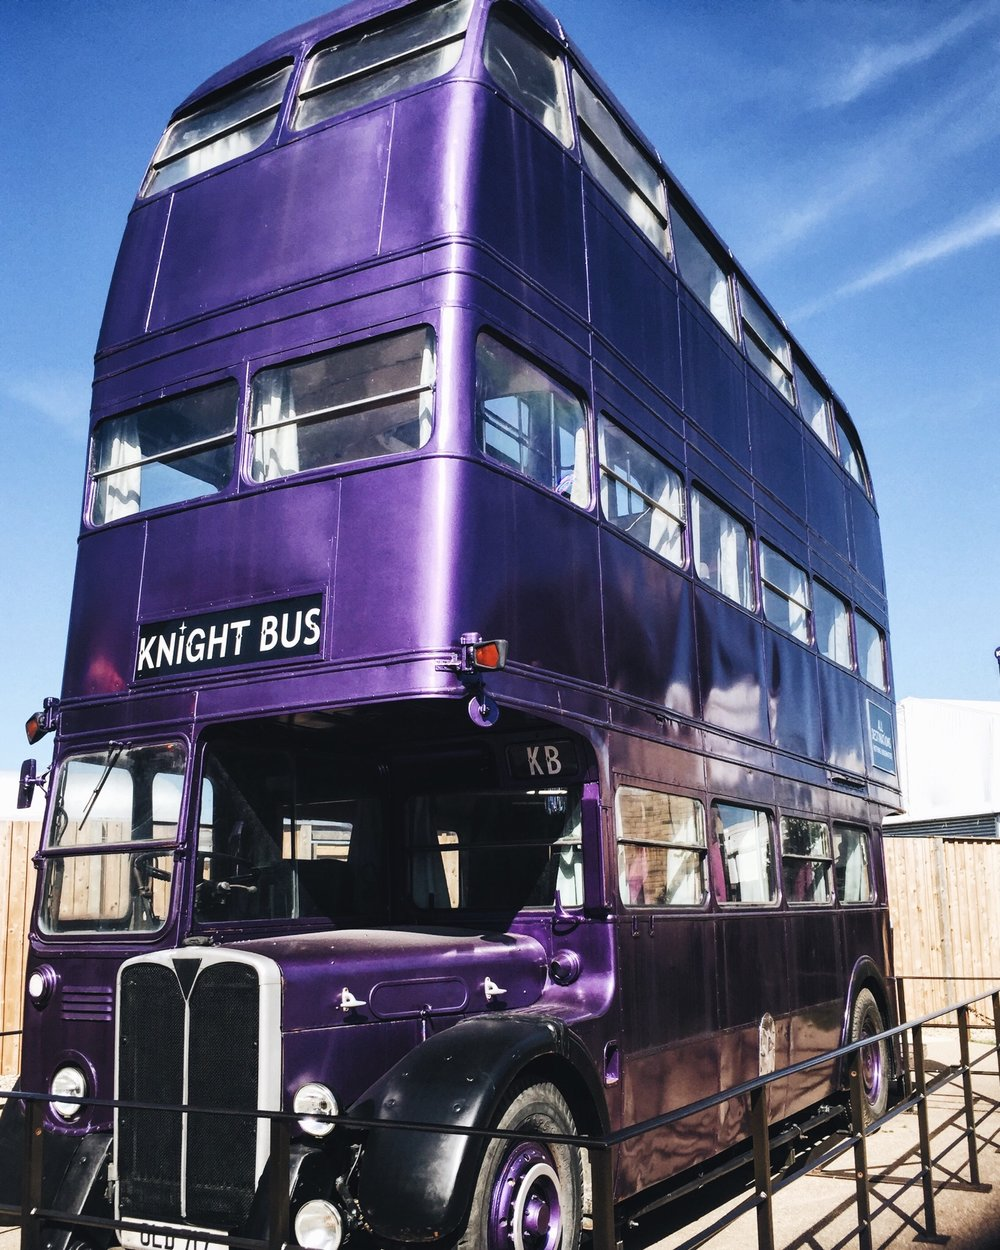 All aboard the Knight bus